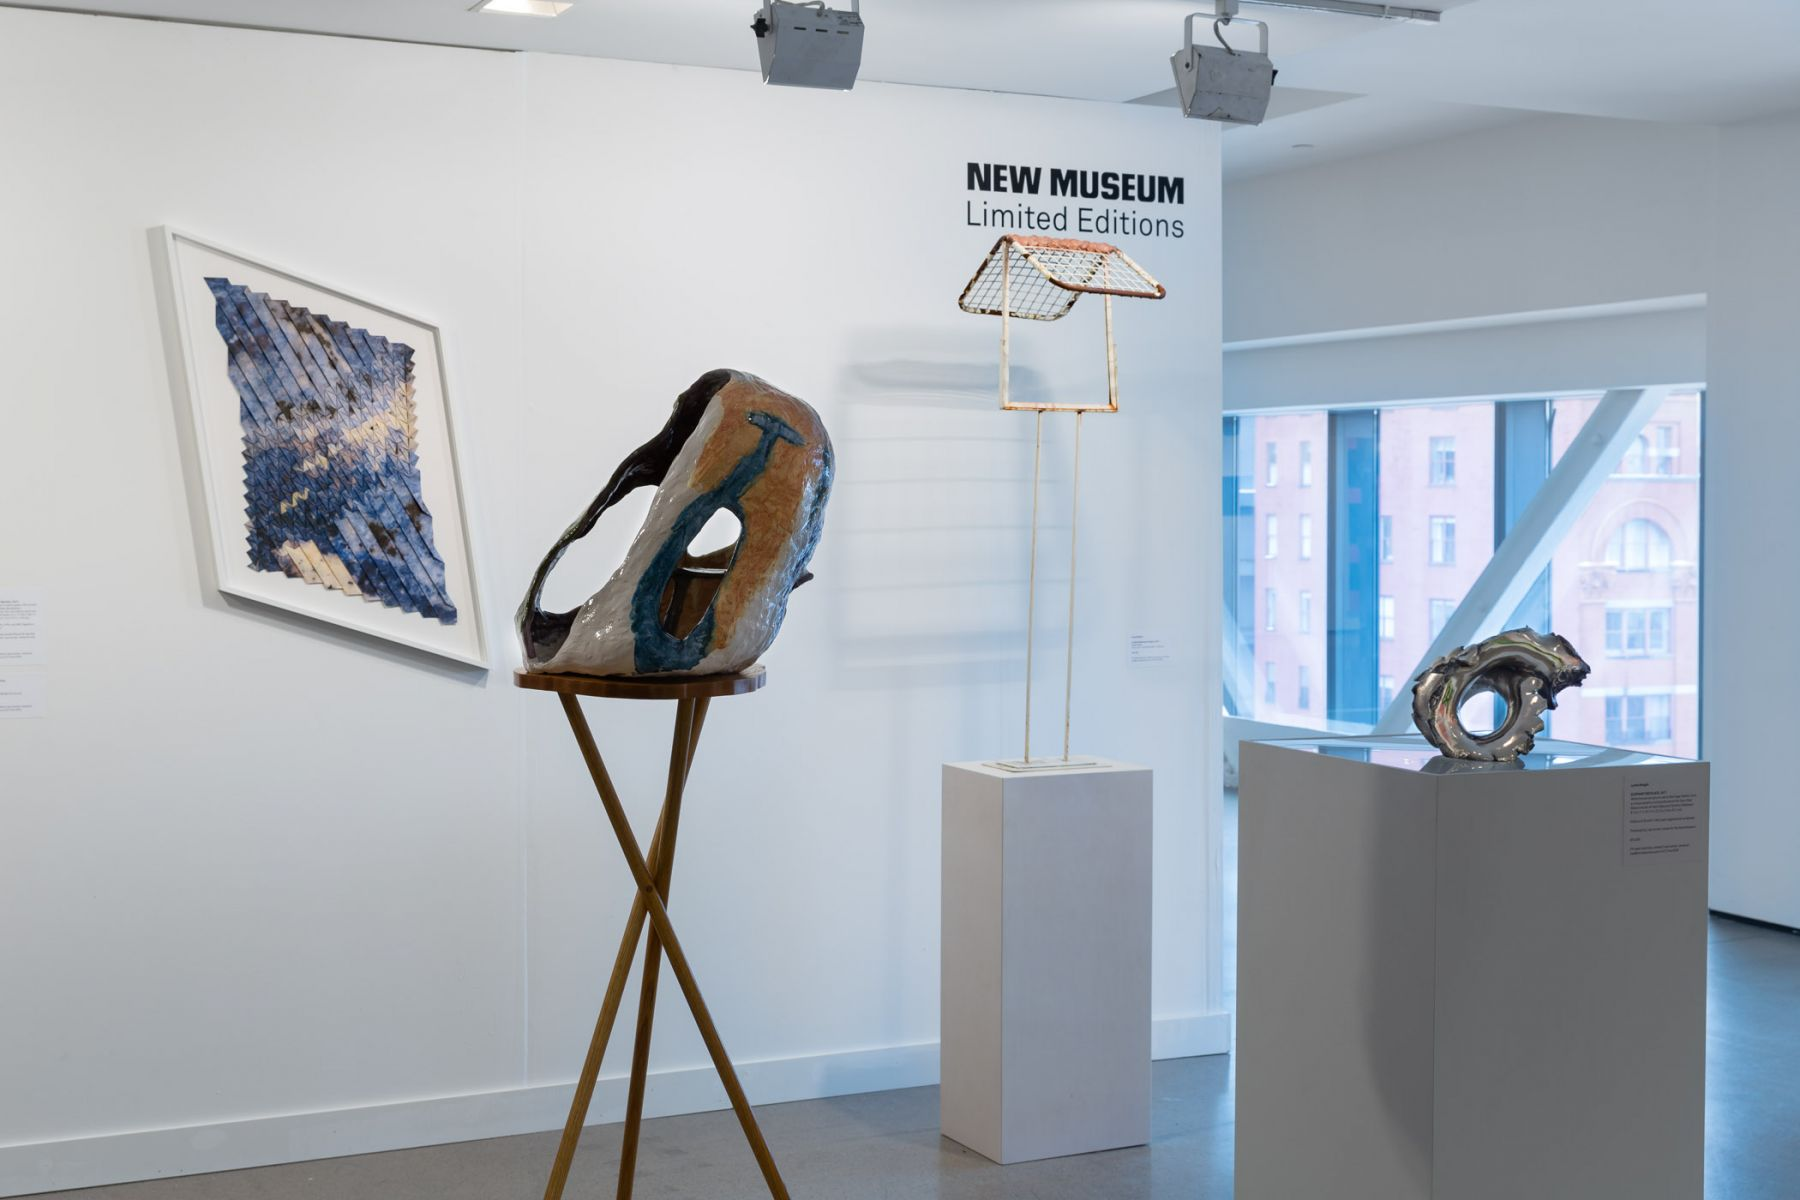 Exhibition view of New Museum at Independent New York, 2018.